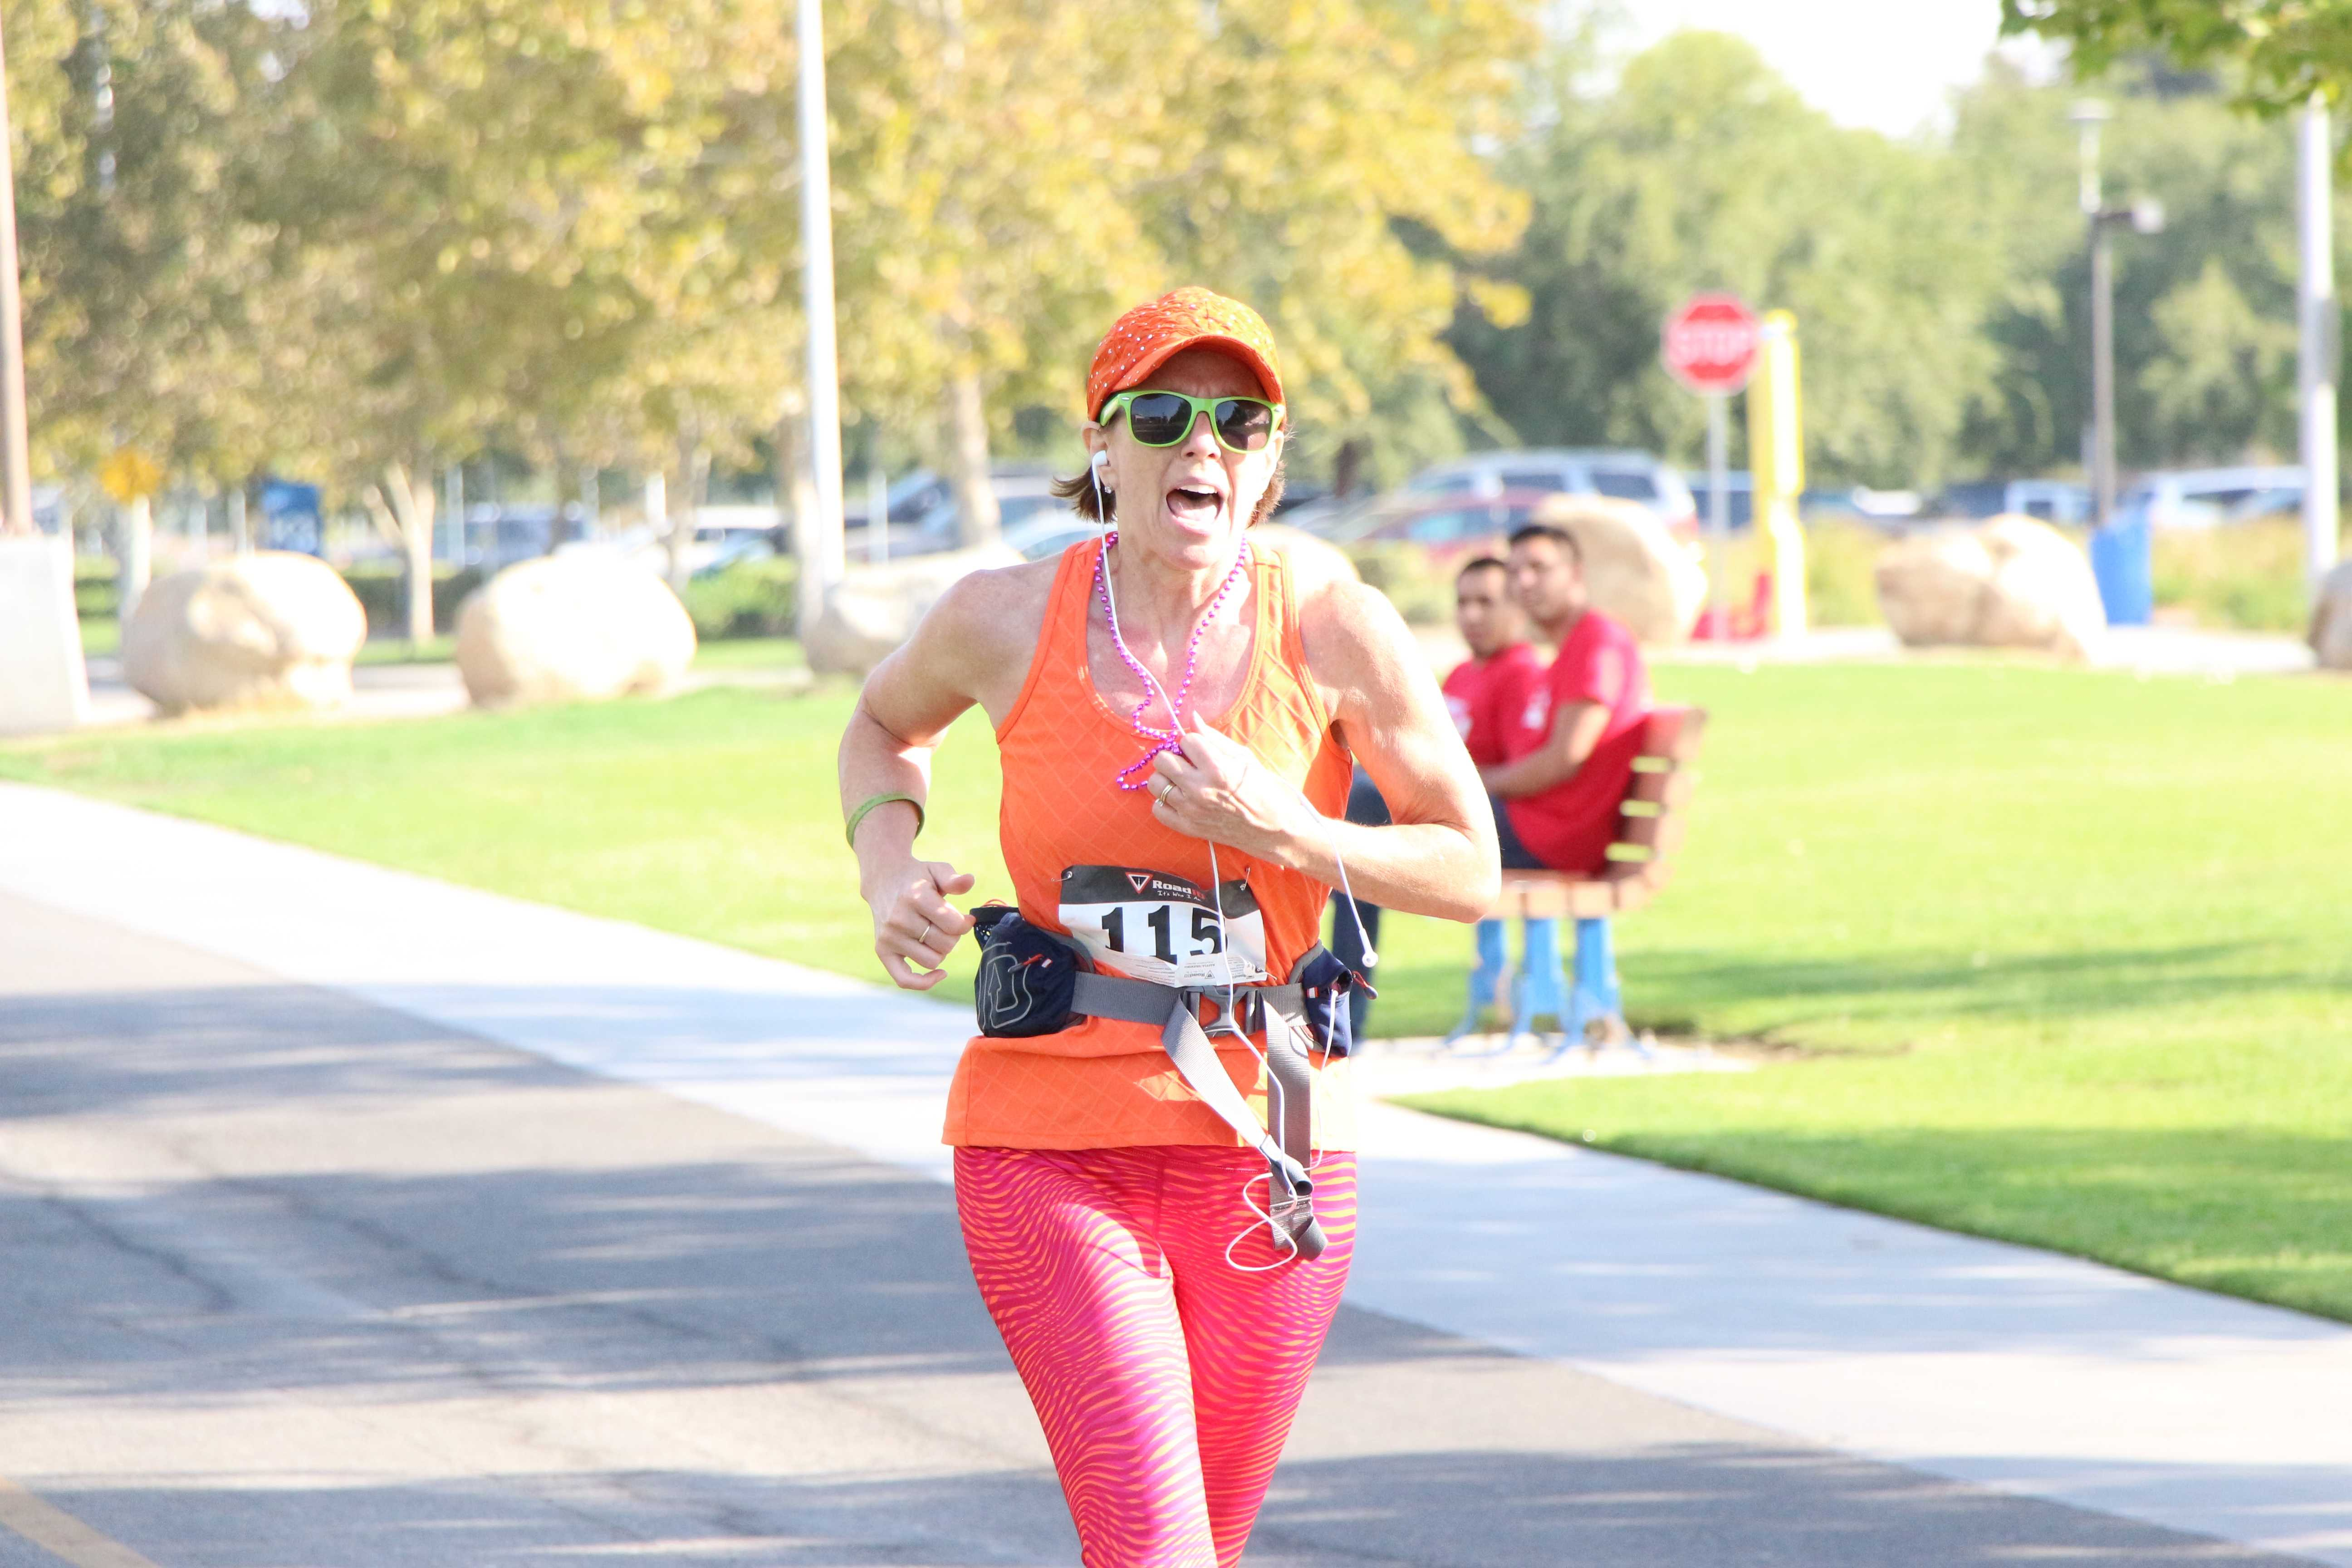 Sara Danville seconds away from crossing the finish line for the Bring out the Bling 5K Fun Run benefitting Dress for Success Bakersfield at CSUB on Saturday.  Photo by Alejandra Flores/ The Runner